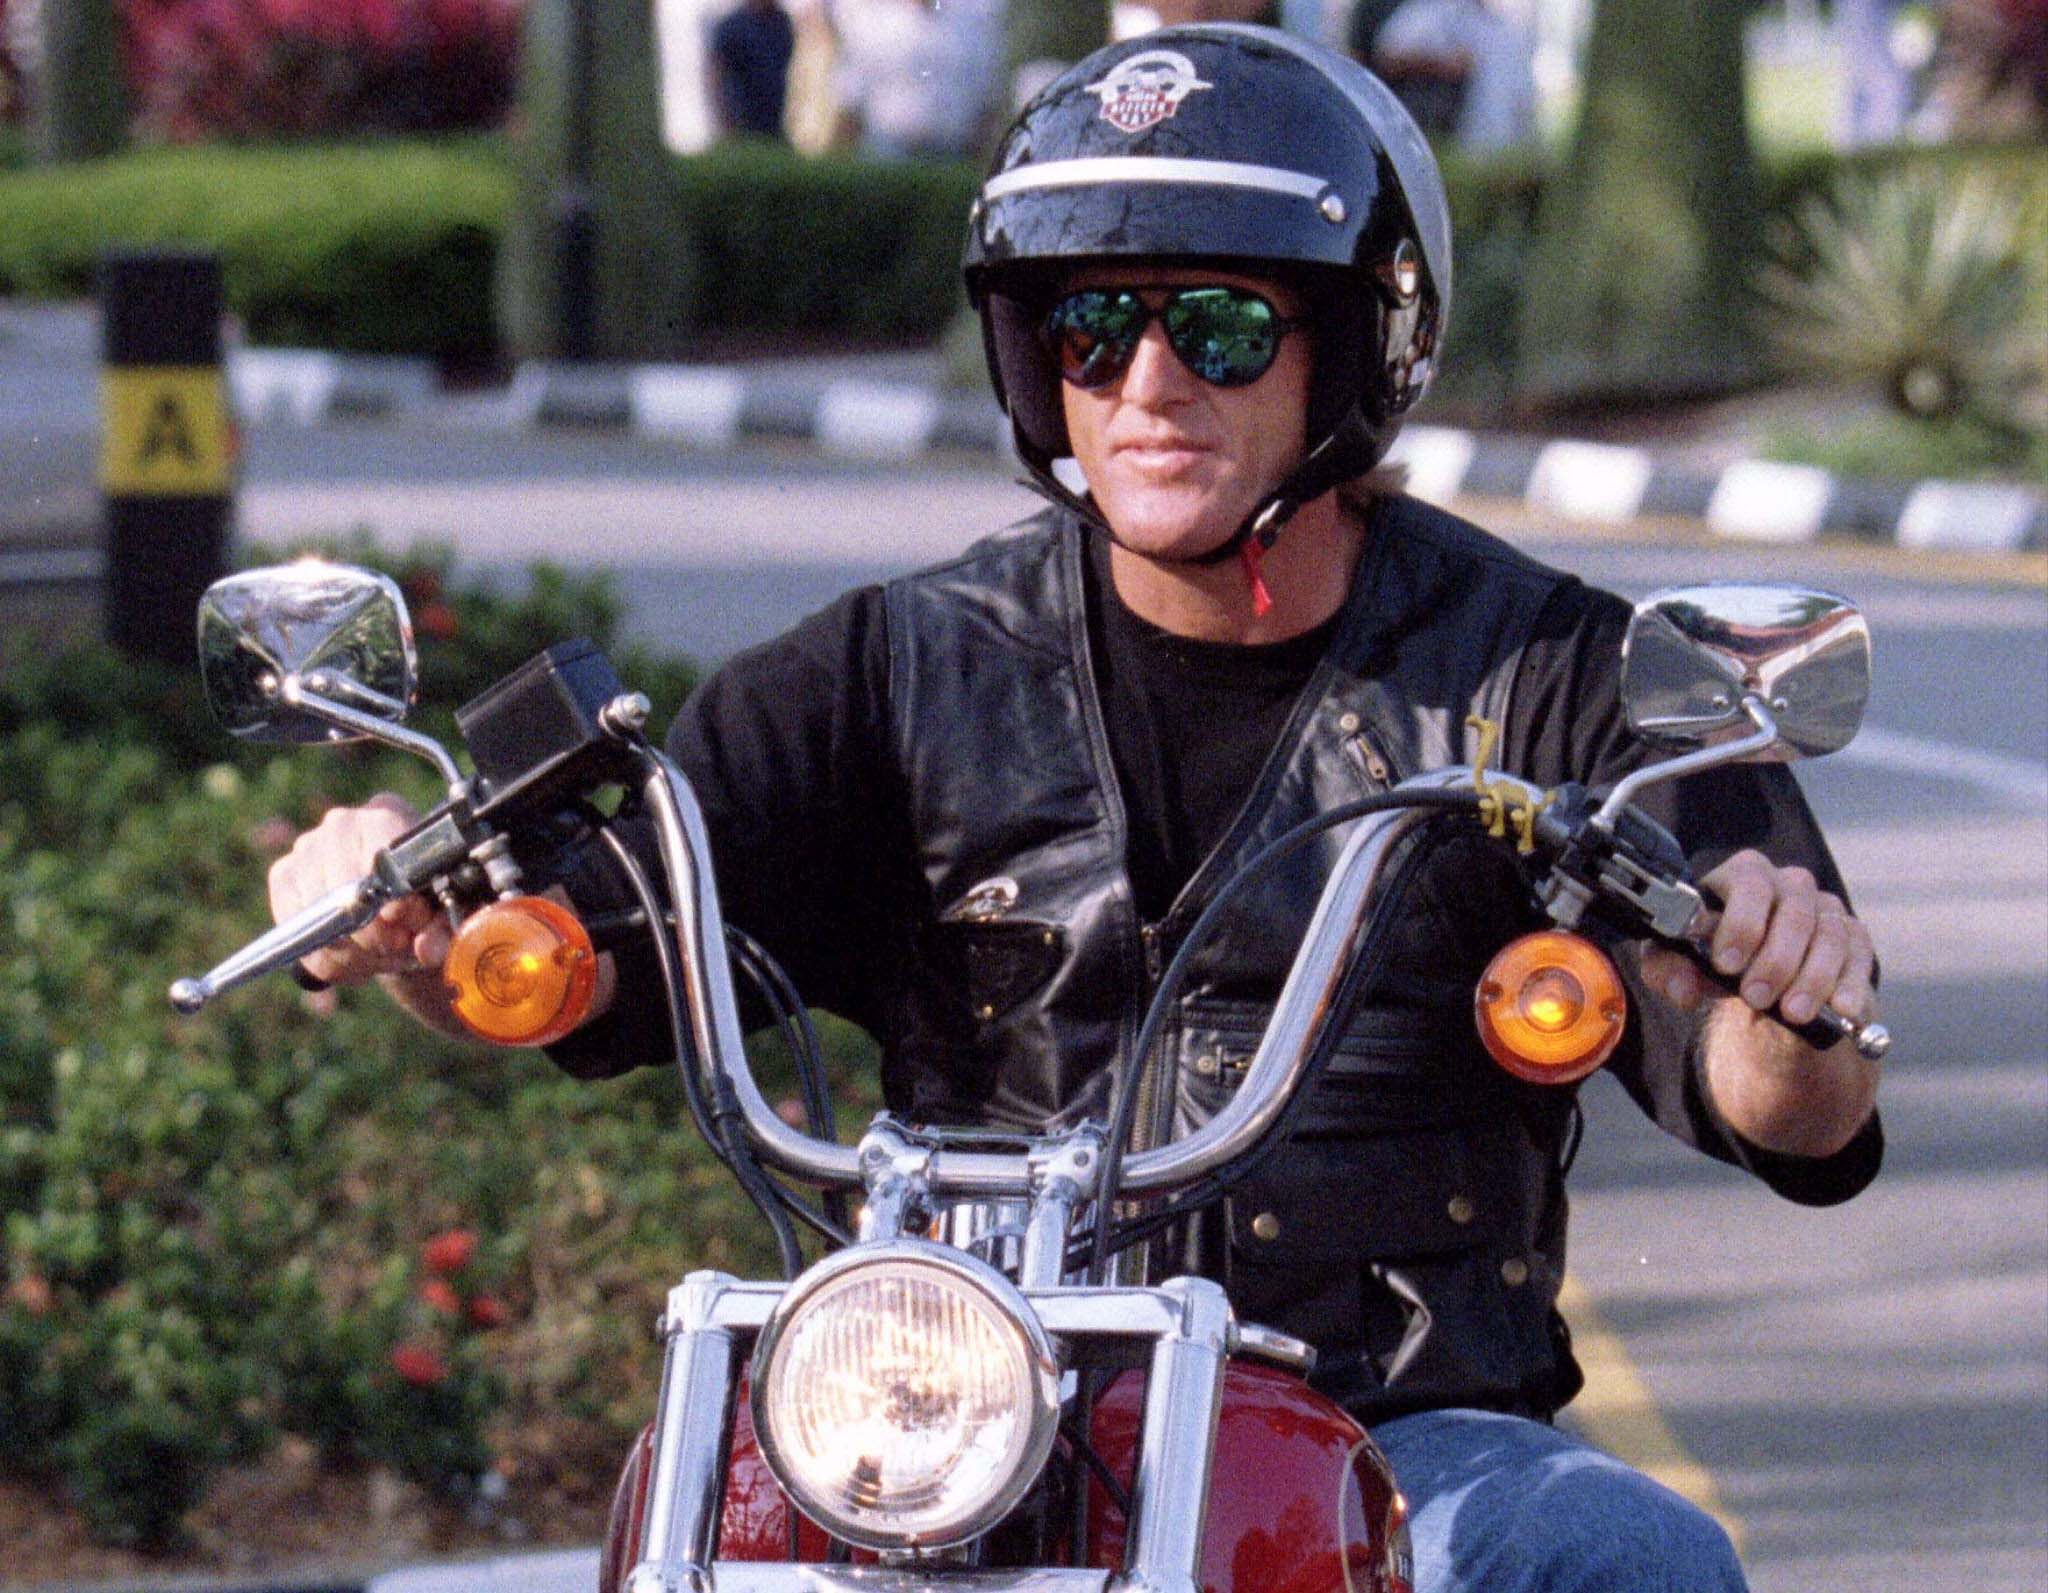 The number-one ranked golfer in the world, Greg Norman sports leather, sunglasses and a Harley helmet and as he arrives at the Johnnie Walker Classic on a Harley Davidson motorcycle in Singapore on Jan. 27, 1996.